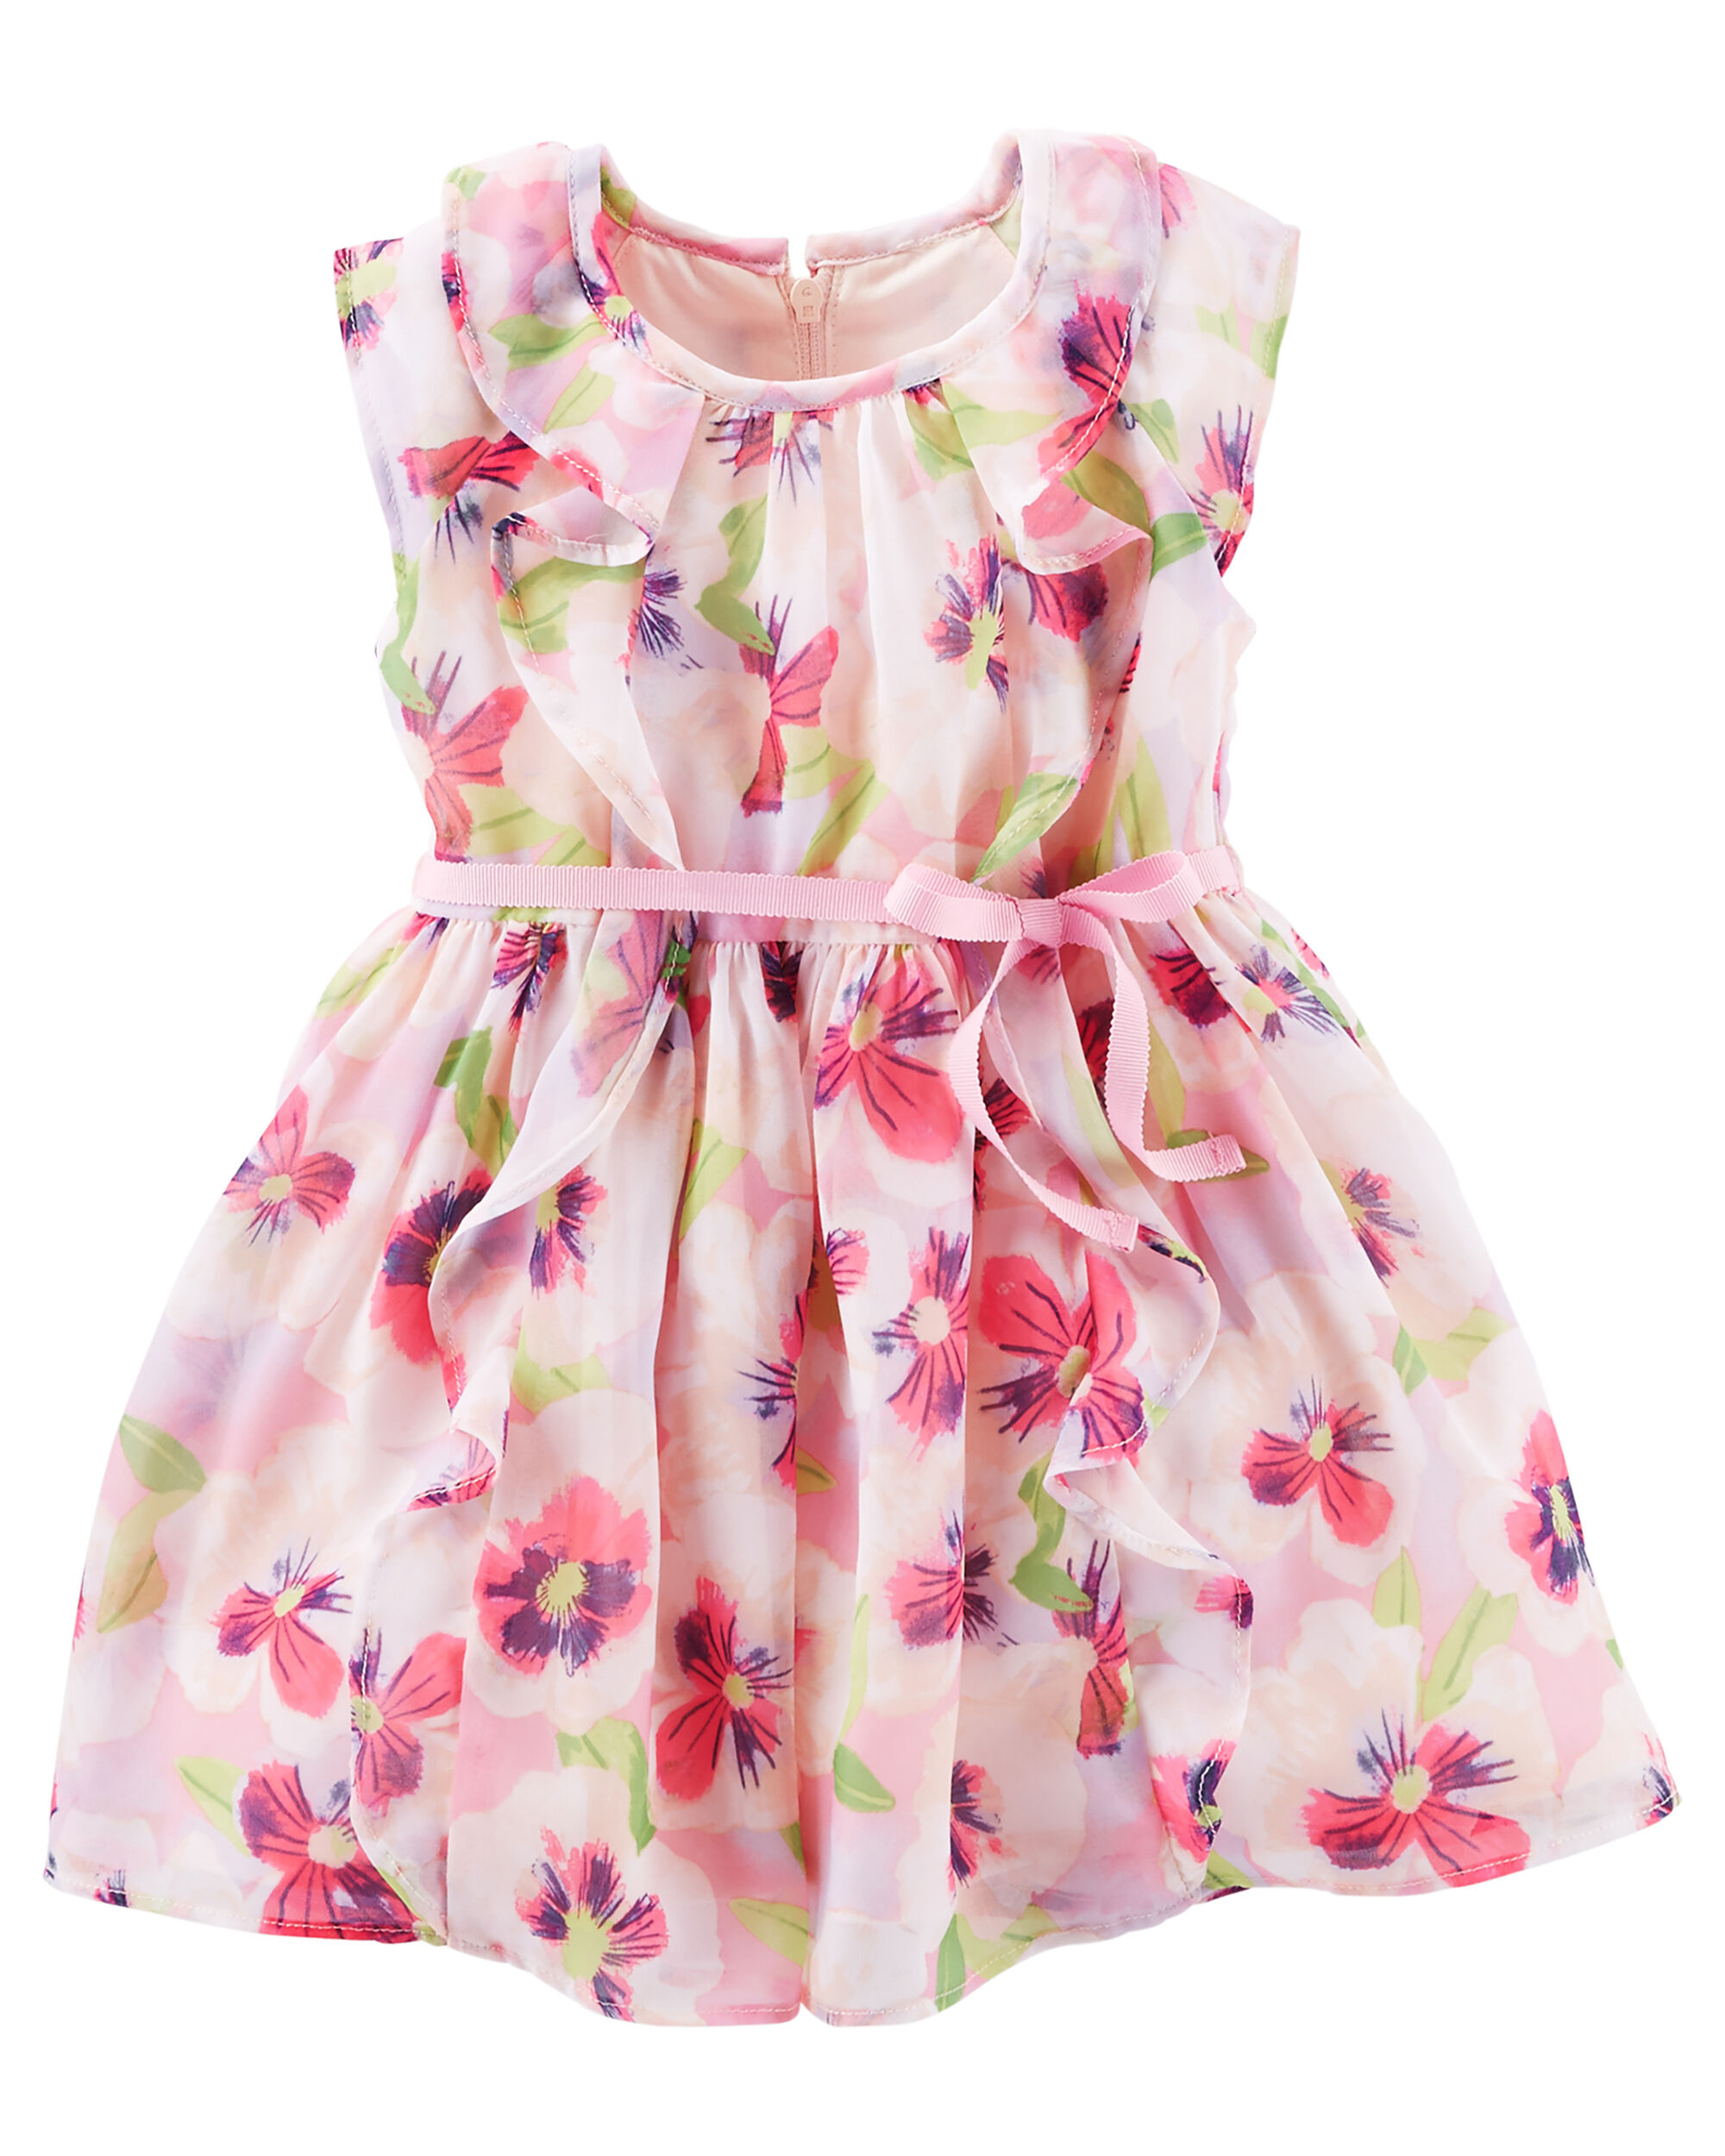 Oshkosh Baby Dresses Newest and Cutest Baby Clothing Collection by